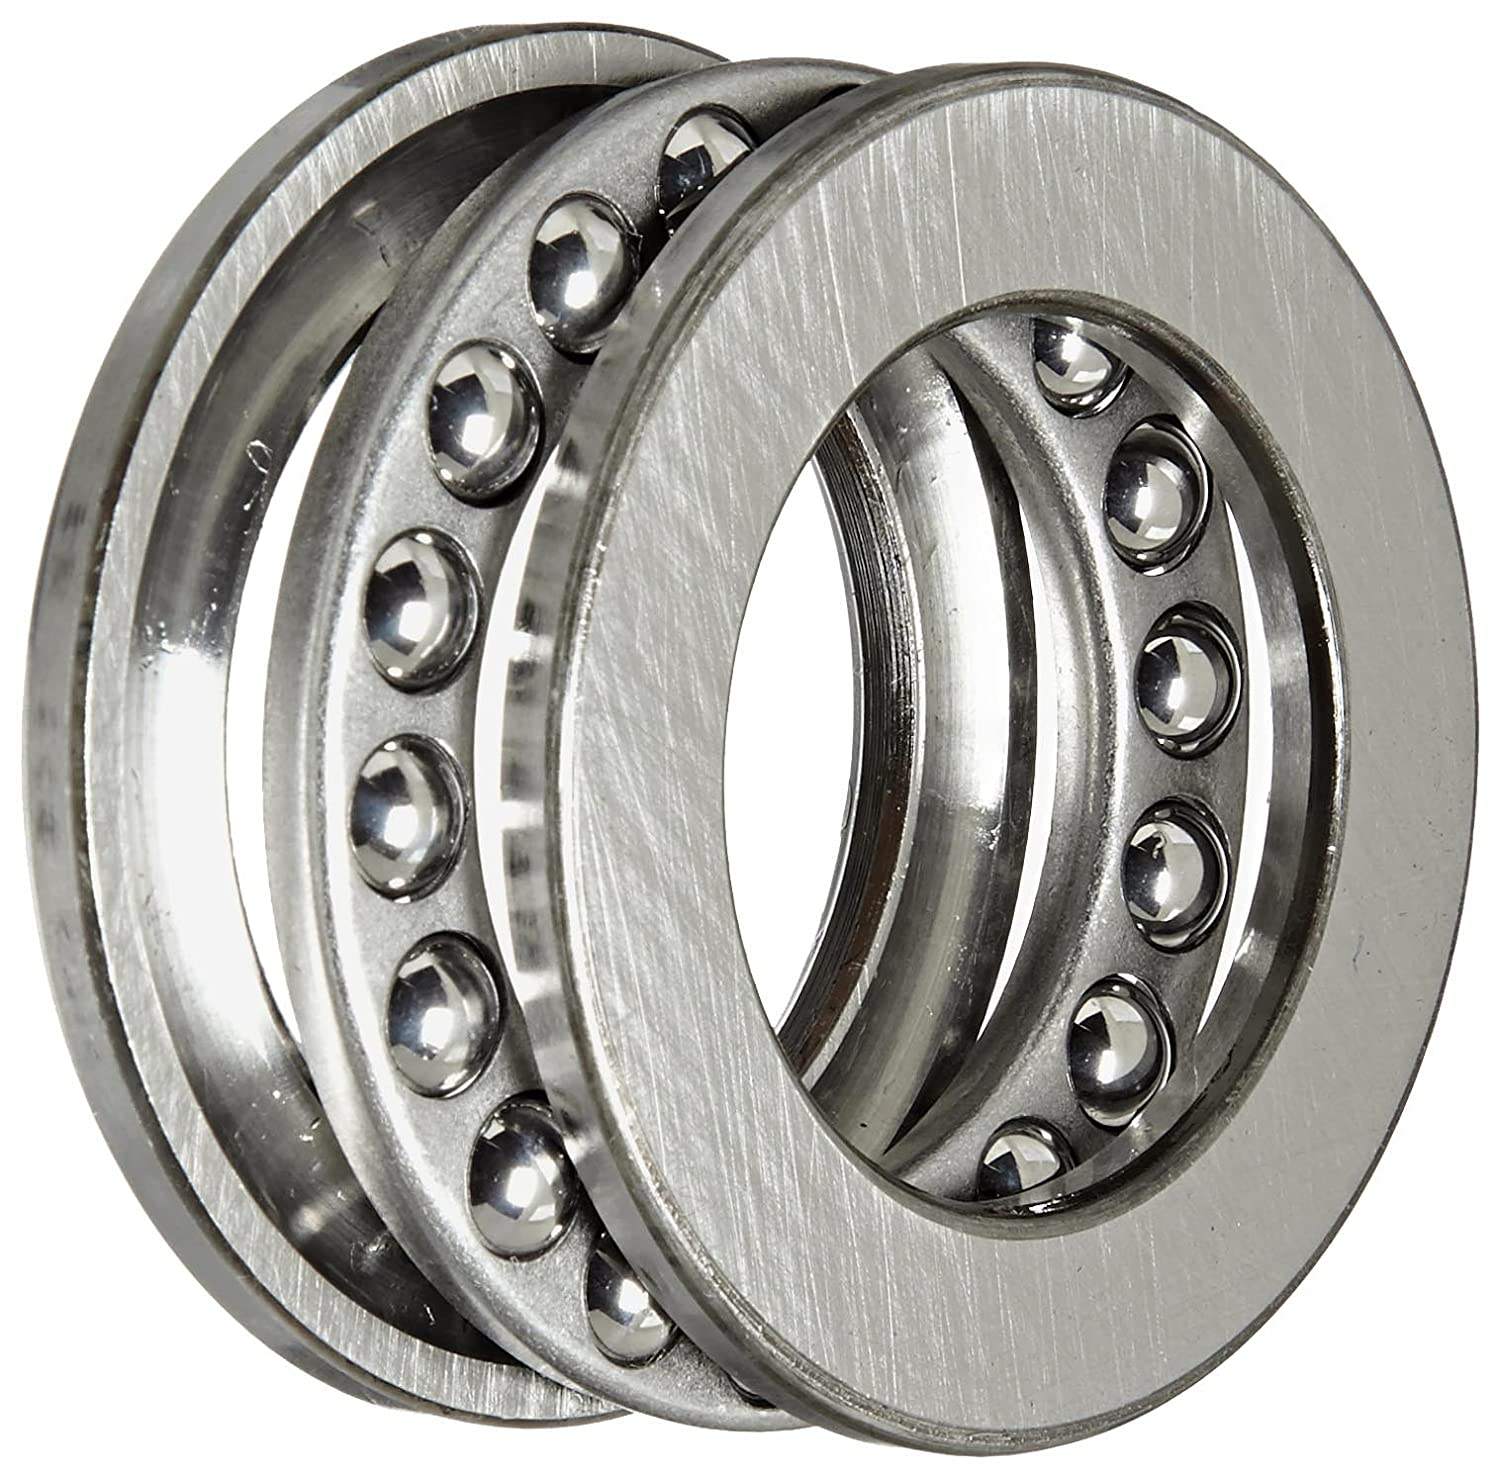 2860lbf Dynamic Load Capacity 4680lbf Static Load Capacity Steel Cage 20mm Bore 10mm Width Grooved Race ABEC 1 Precision SKF 51104 Single Direction Thrust Bearing Open 35mm OD 3 Piece 90/° Contact Angle